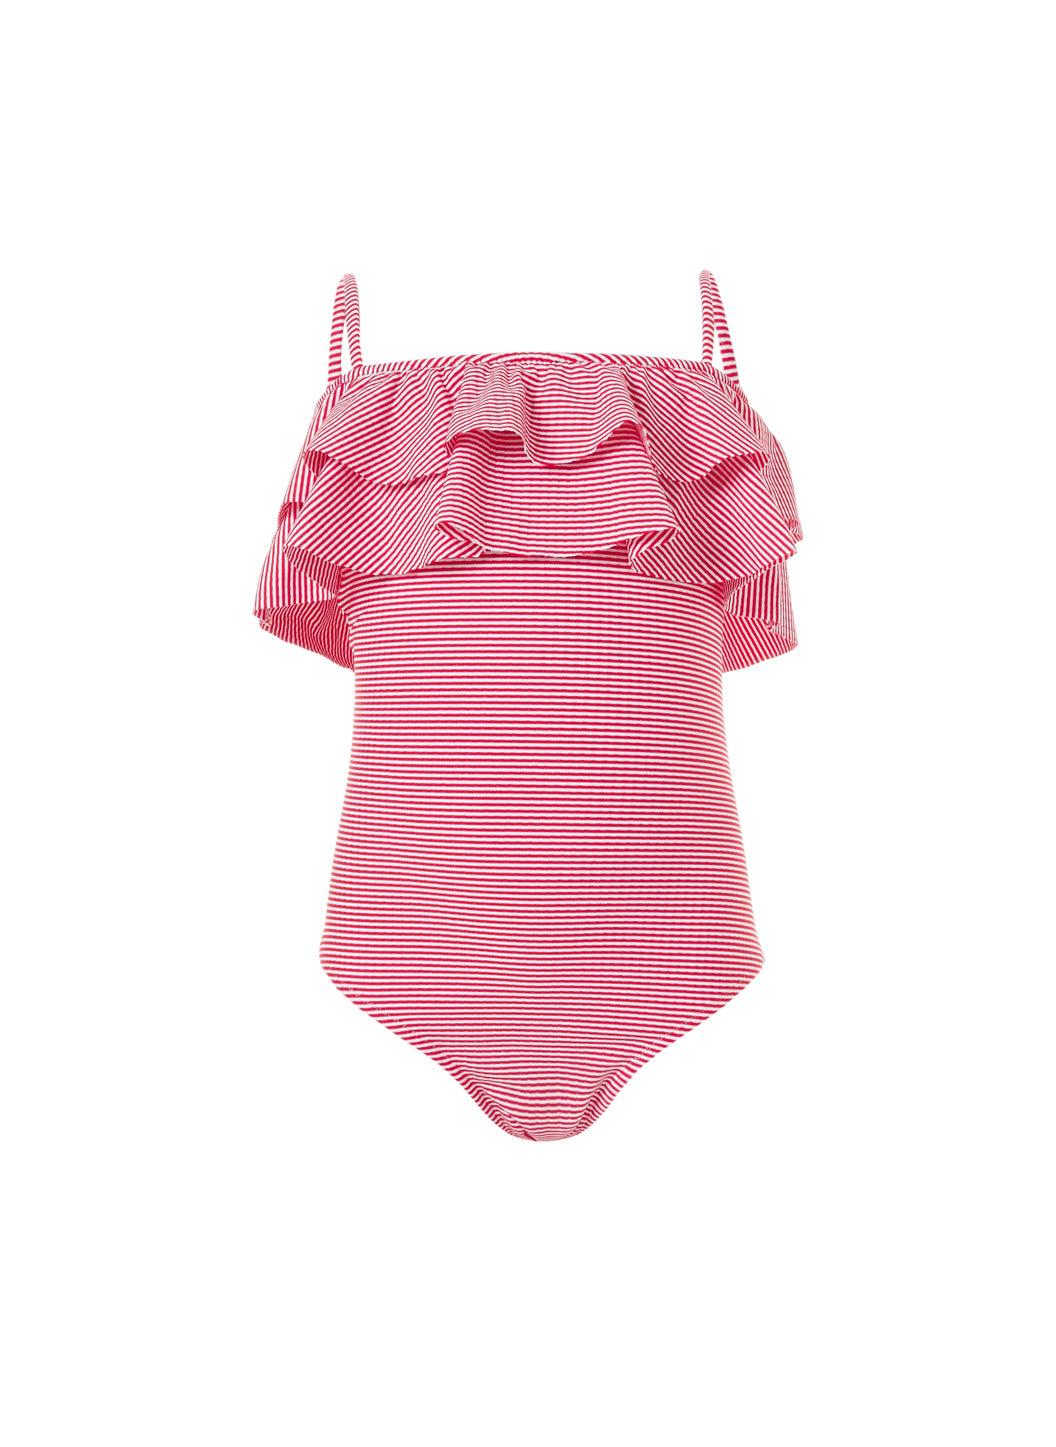 Baby Ivy Red Gingham Frill Onepiece Swimsuit